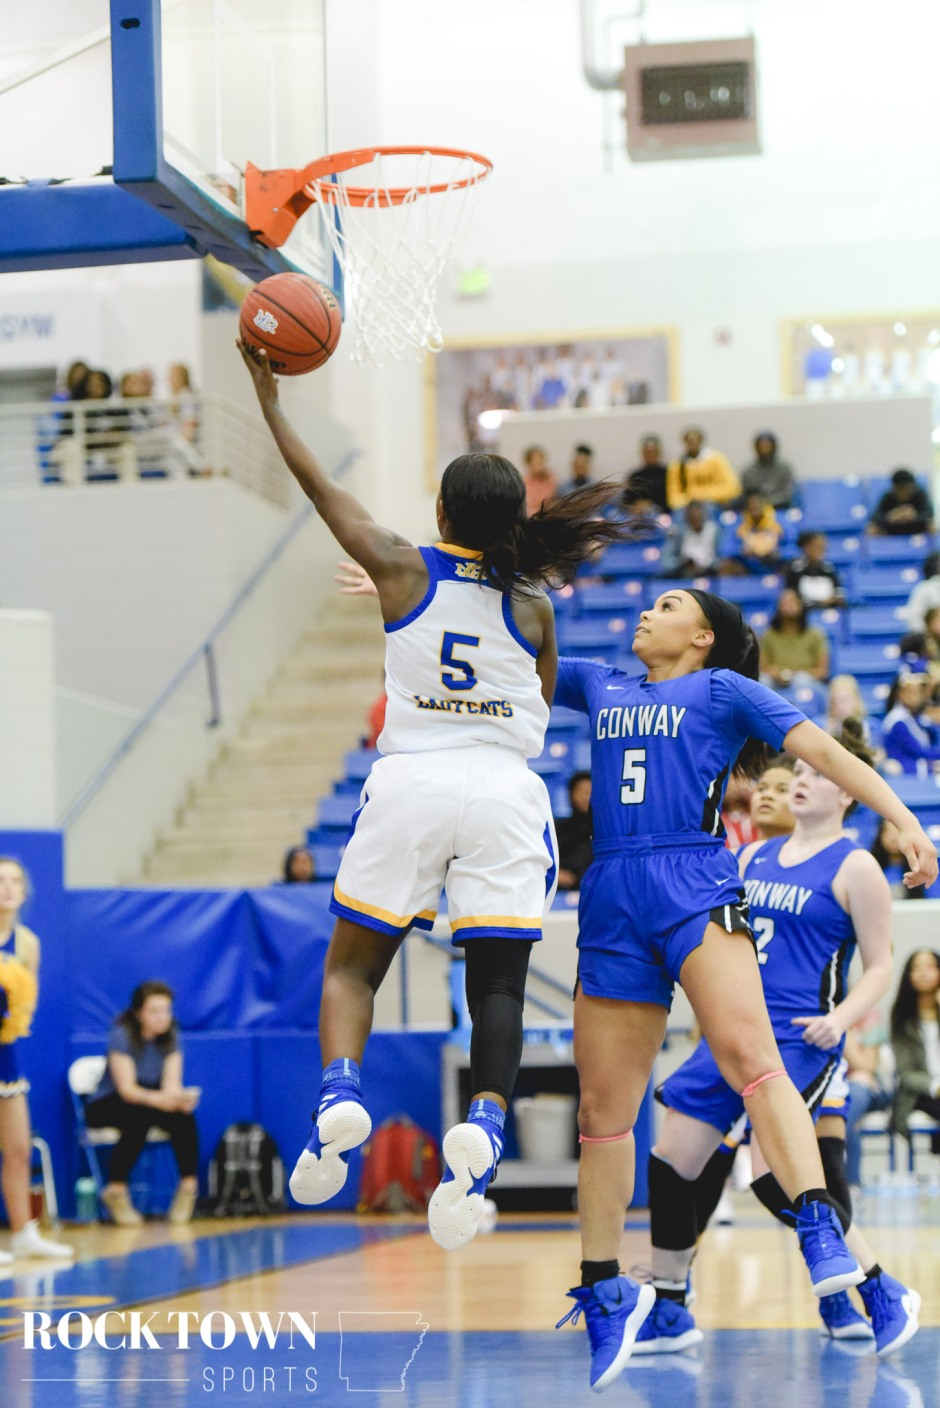 Conway_NLR_bball19(i)-7